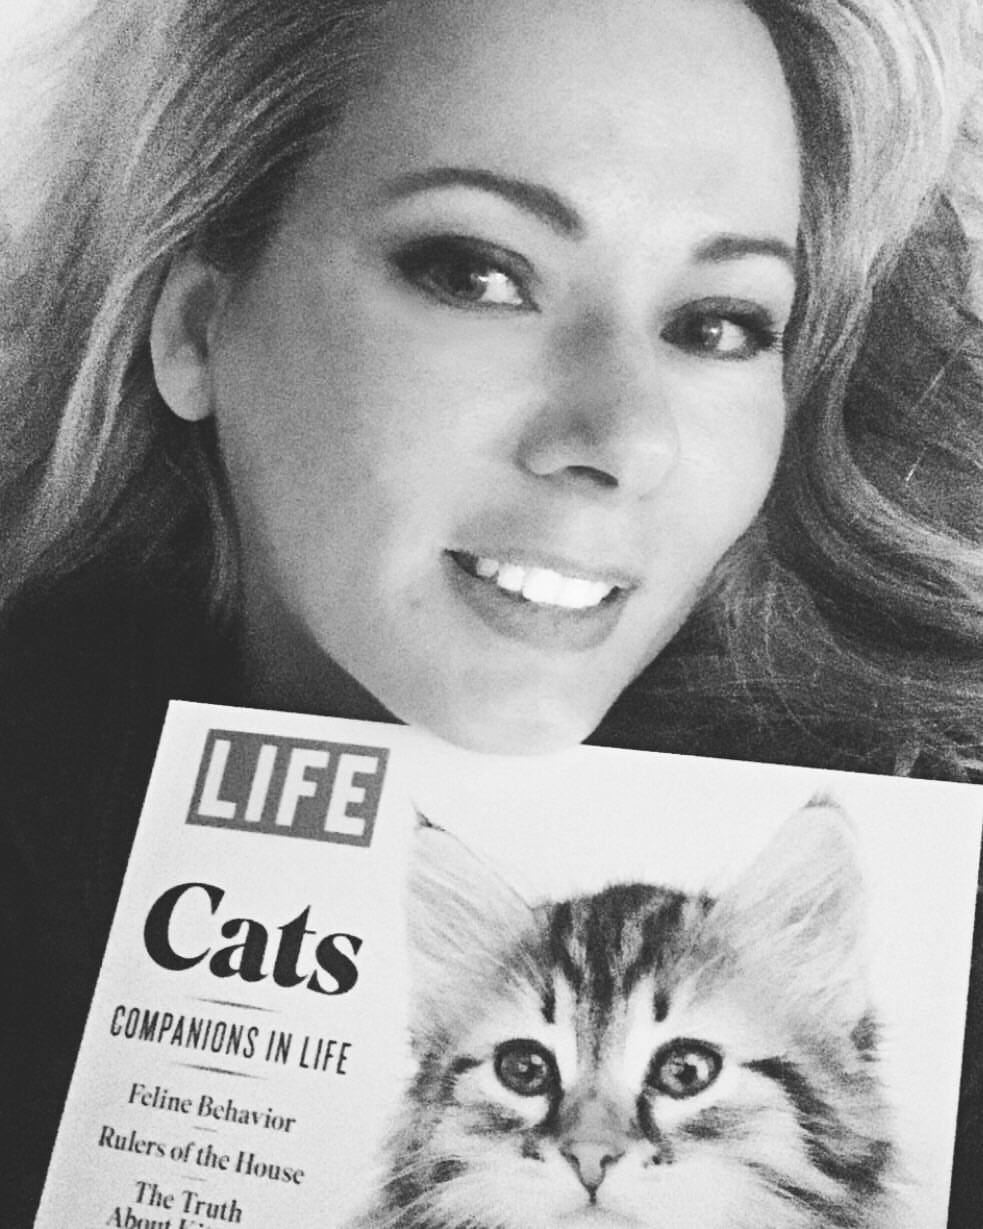 LIFE Magazine with Oxford-trained Feline Behavior Scientist Mieshelle Nagelschneider on the History of Cat Behavior